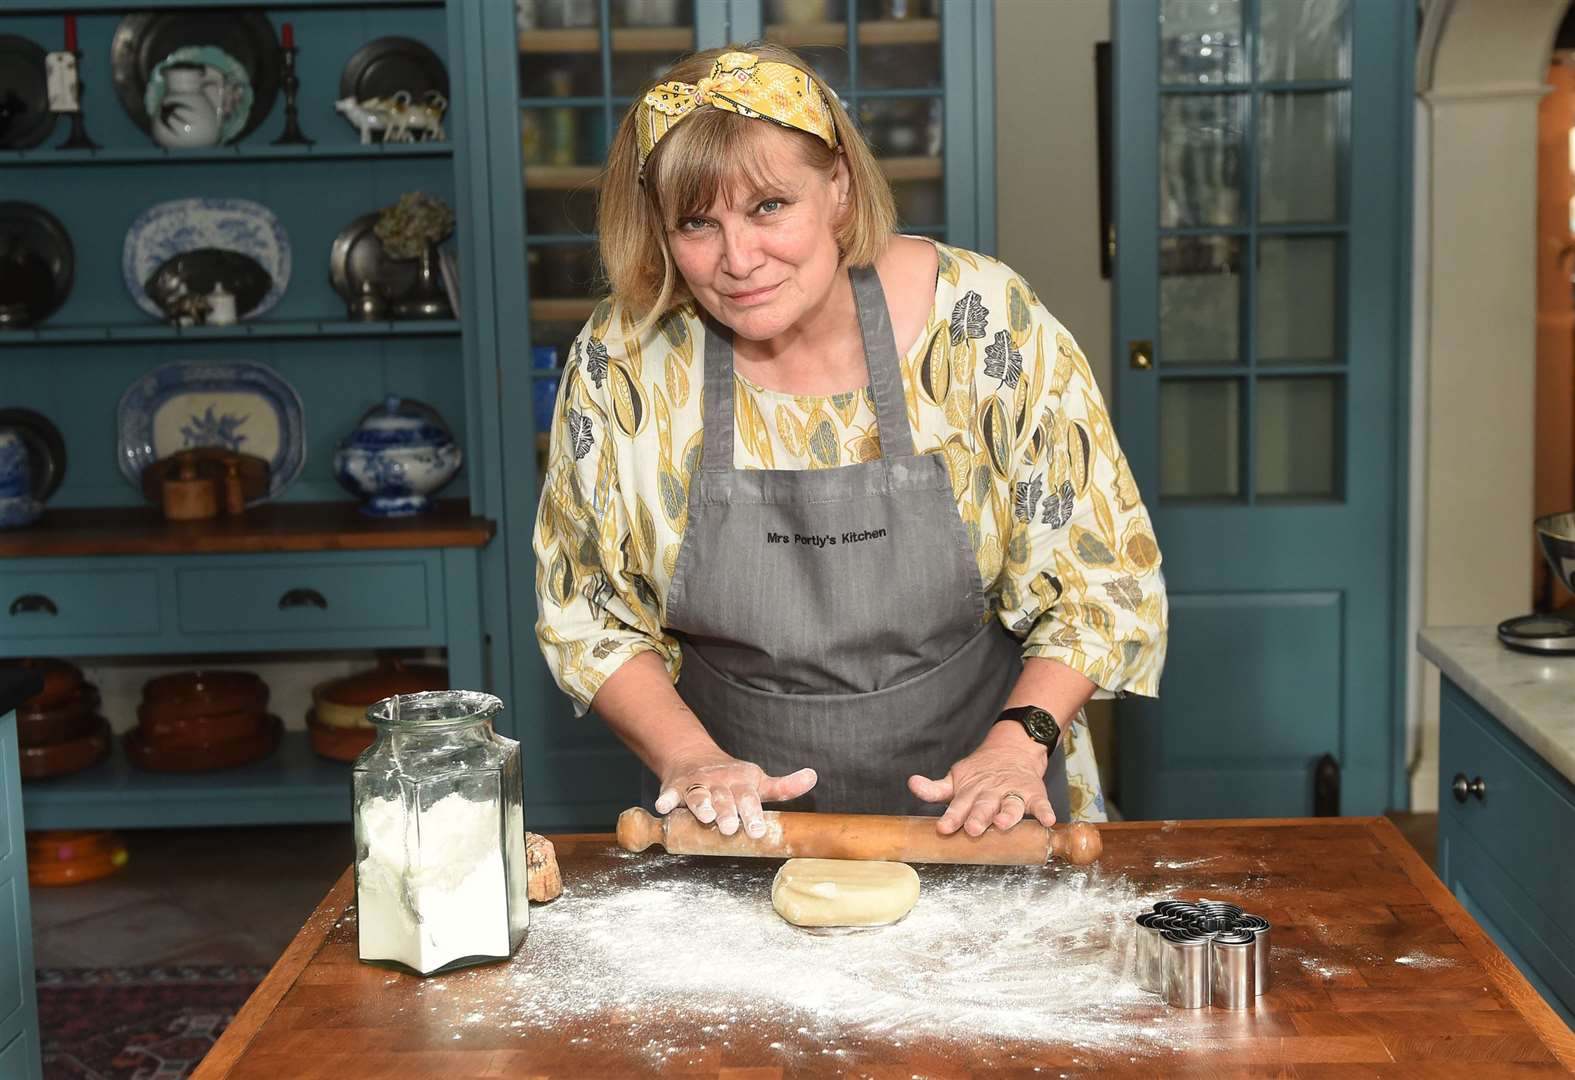 Learn to cook with Mrs Portly in her farmhouse kitchen